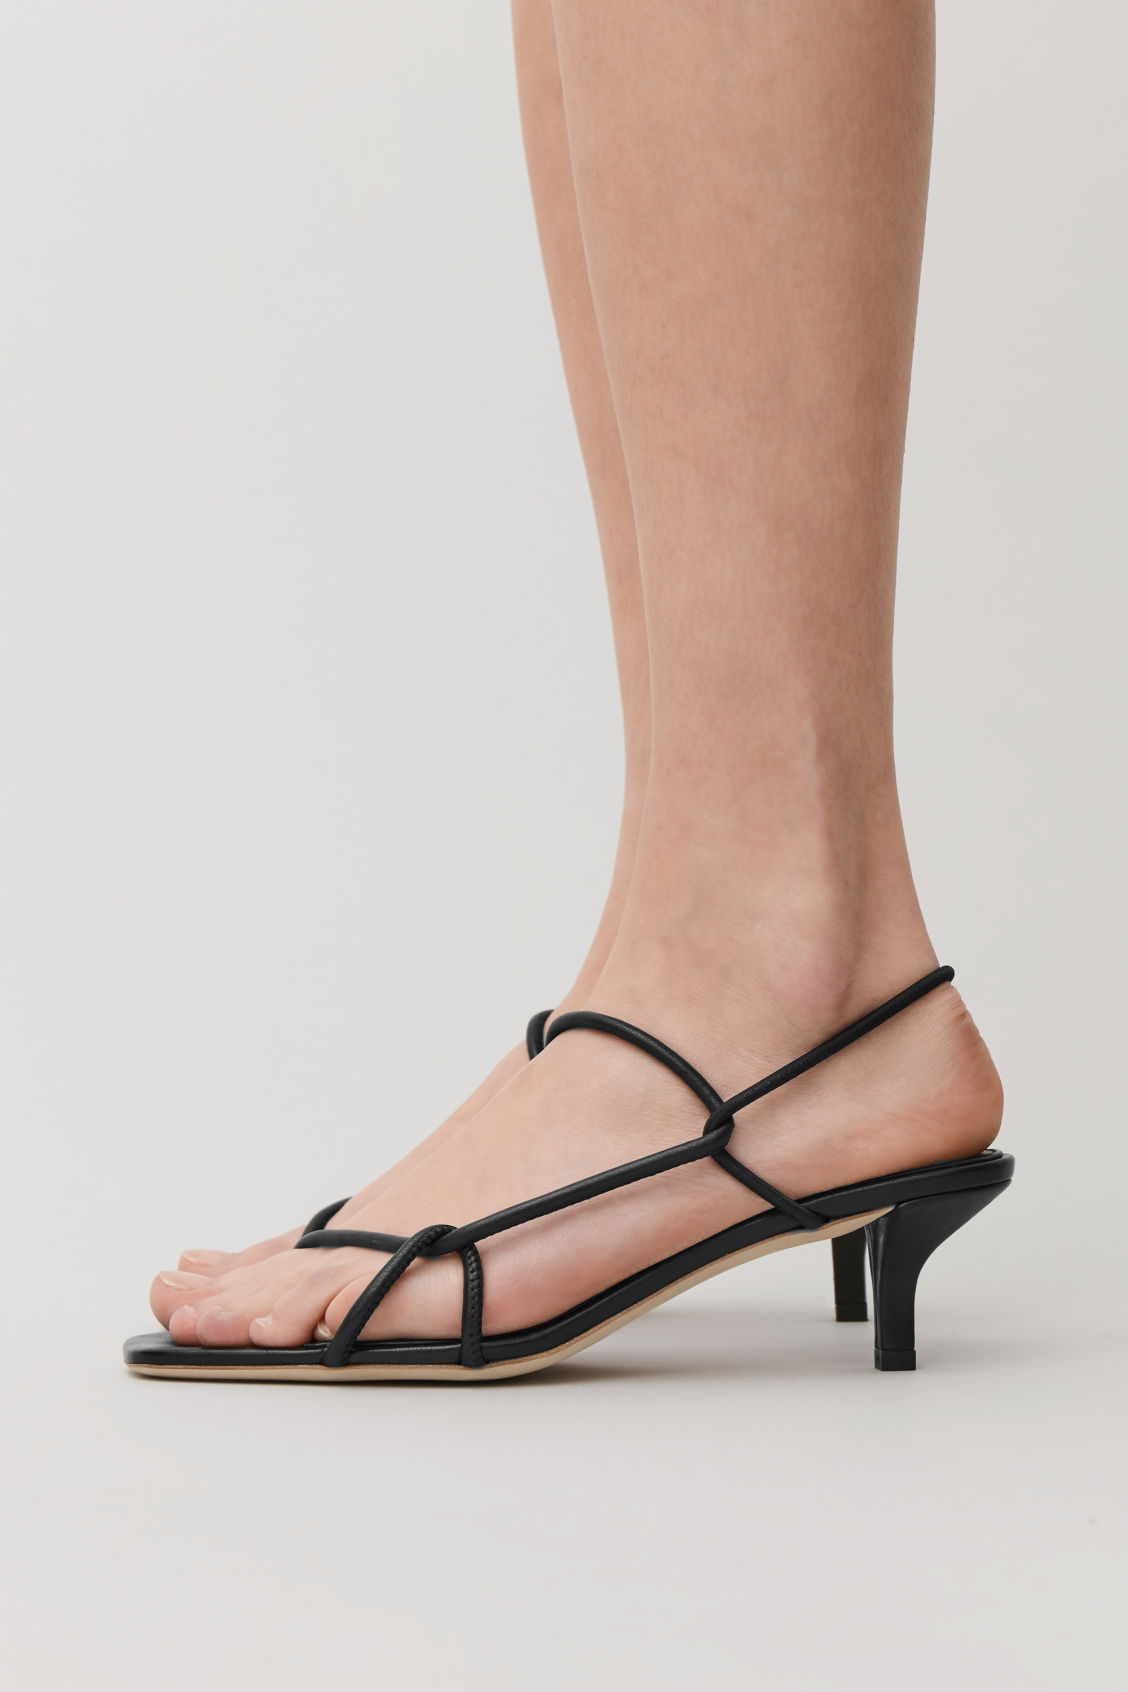 Detailed image of Cos strappy leather kitten-heel sandals in black